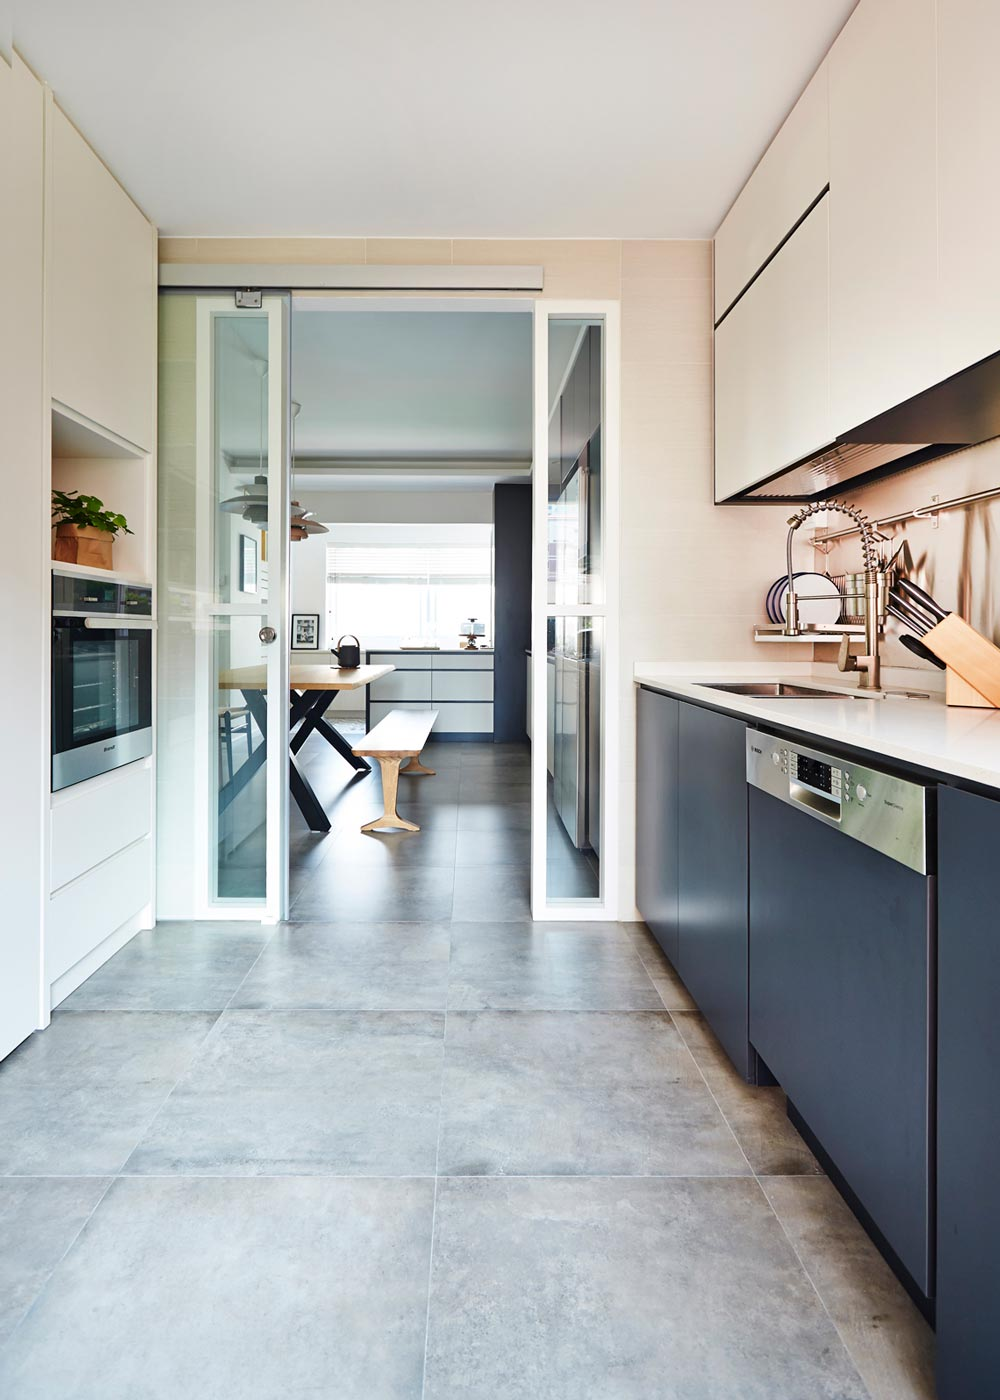 8 kitchen design trends in singapore you might see more of in 2018 in 2020 kitchen ideas on kitchen decor trends id=67479